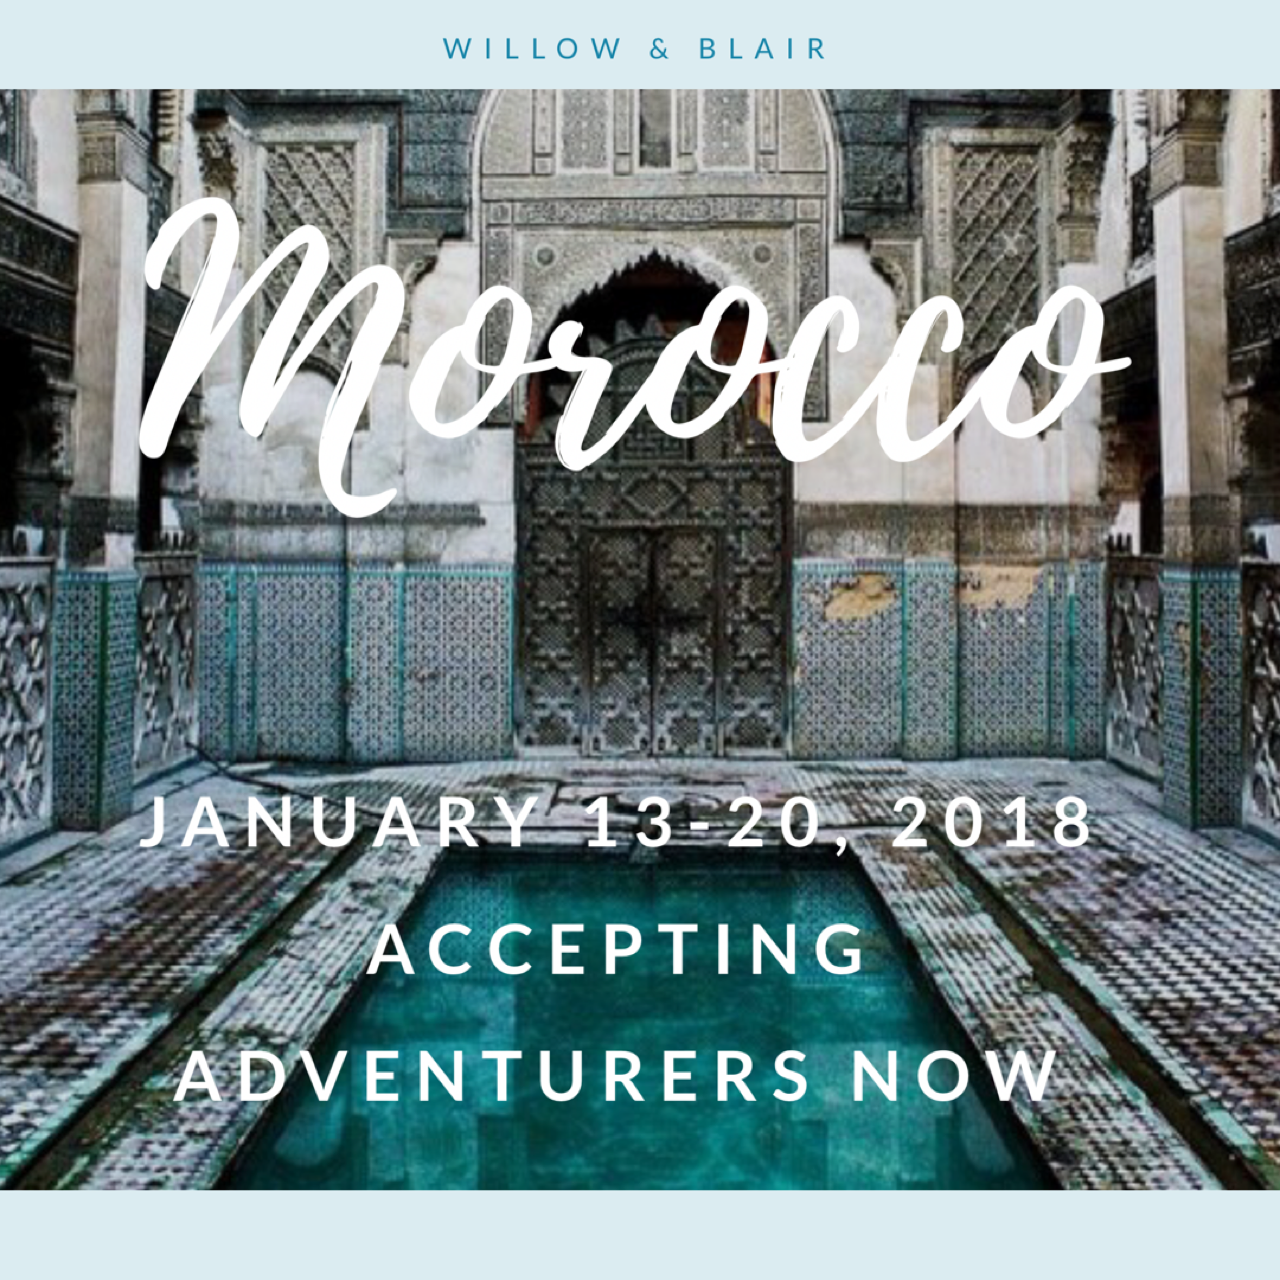 willow and blair tours